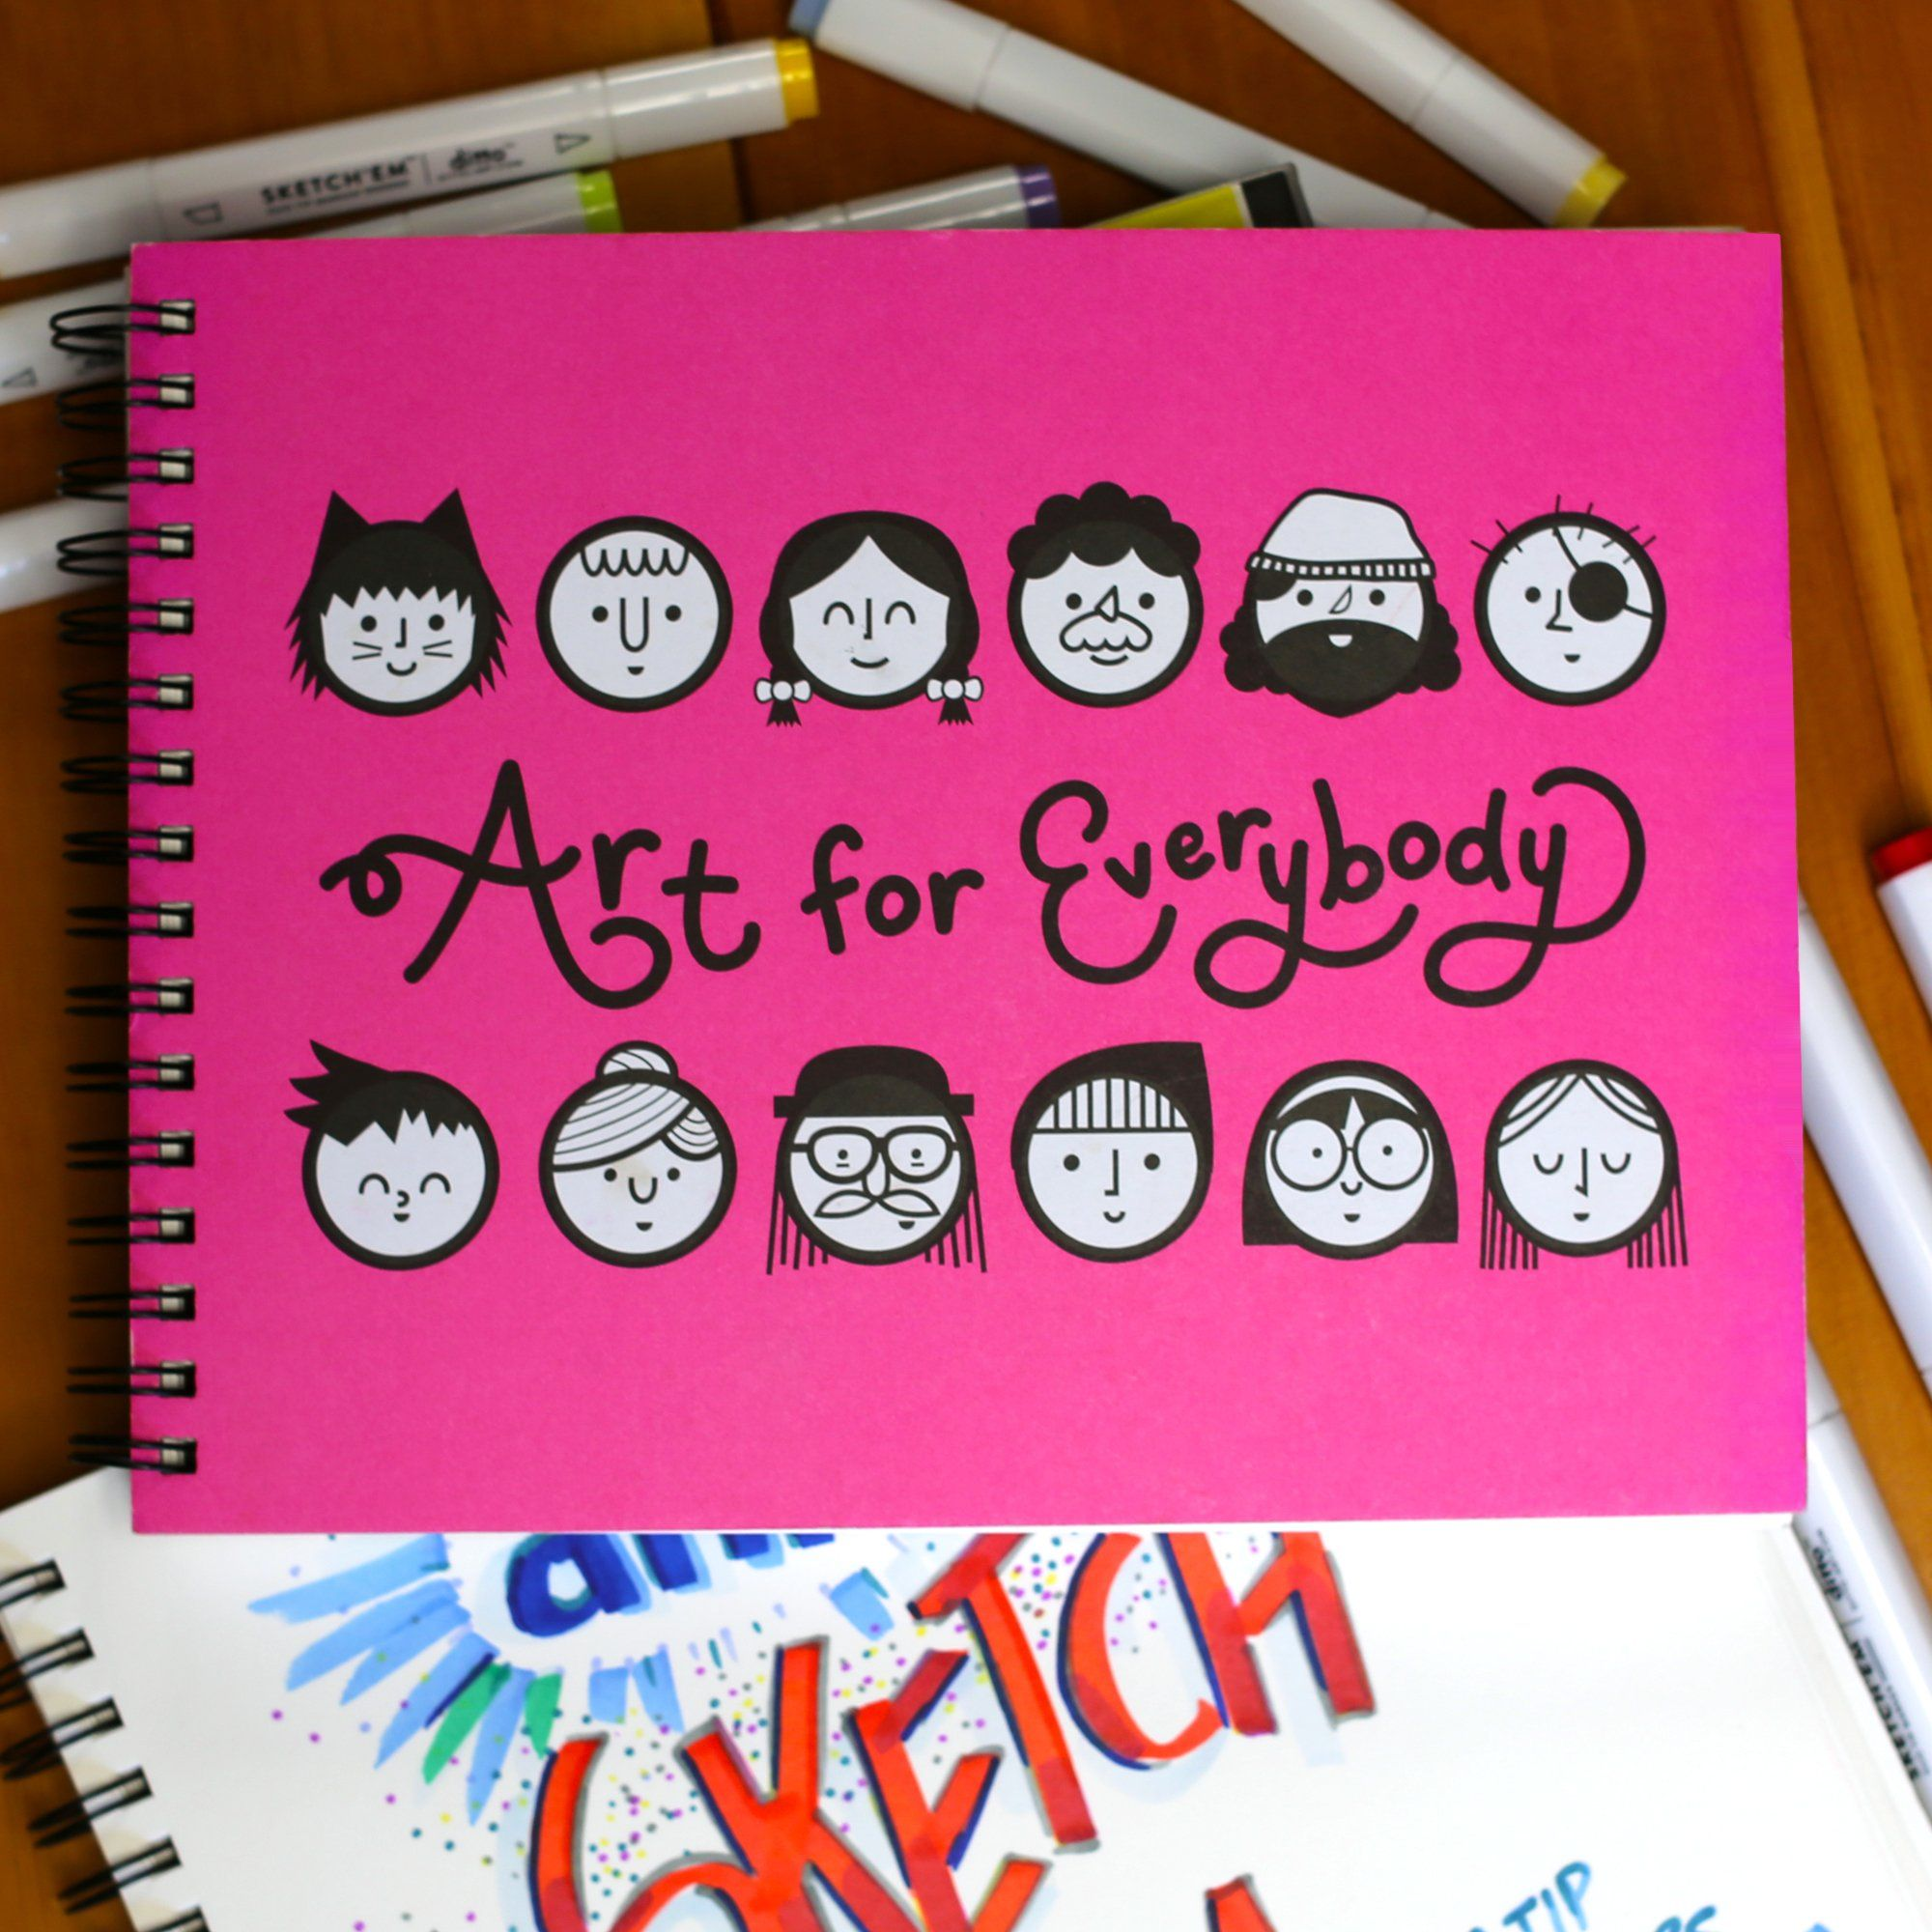 4Cats Sketch Book